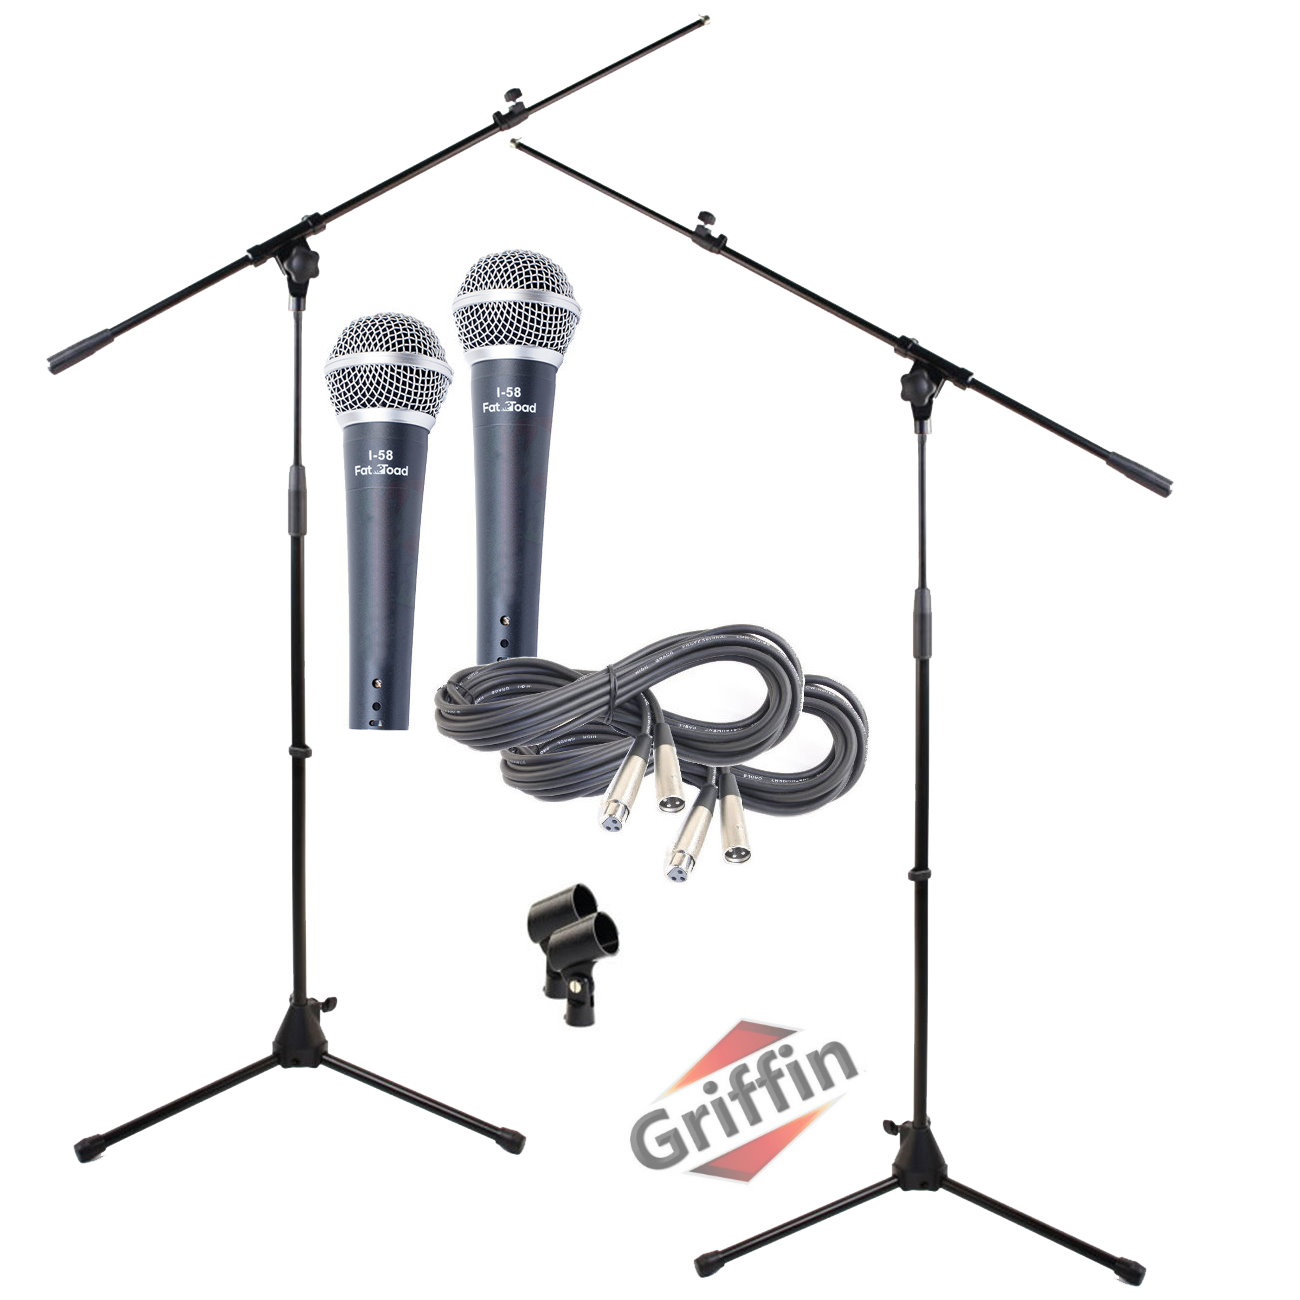 Microphone Boom Stand with XLR Mic Cable, Cardioid Dynamic Microphone & Clip (Pack of 2) by Griffin | Telescoping Arm Holder | Tripod Mount | 20 ft Pro Audio 3-Pin Cord Patch | Vocal Unidirectional Microphone